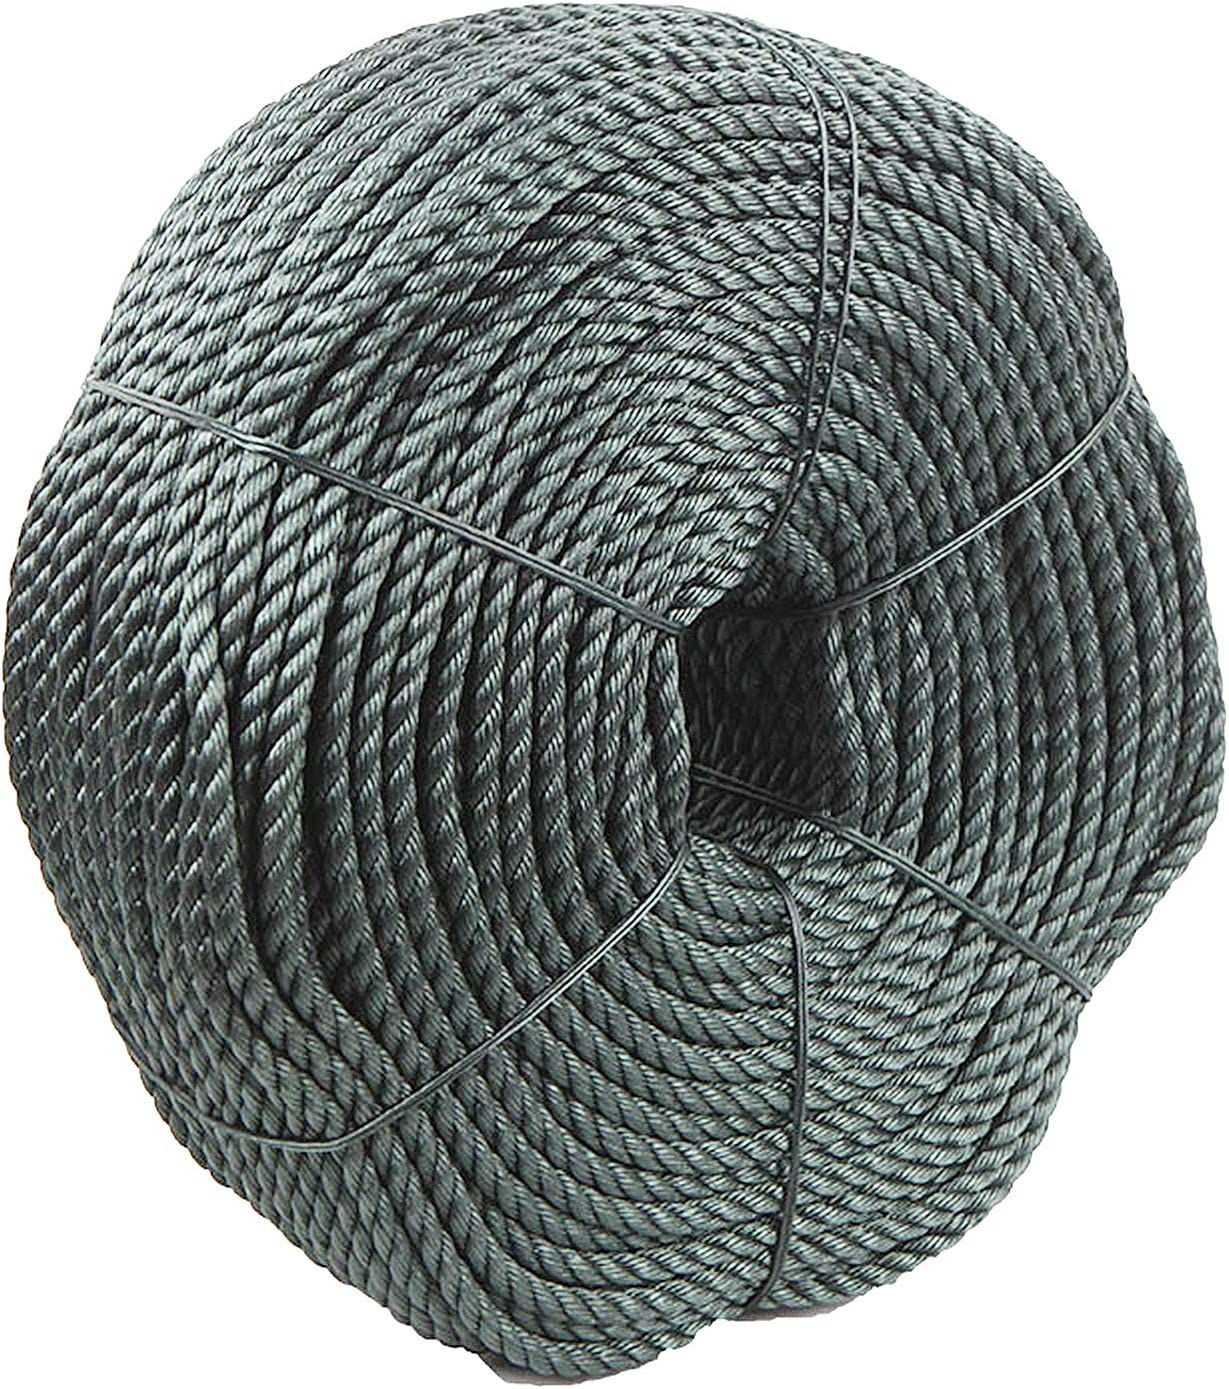 DLYDSSZZ Multifunctional Finally popular brand Nylon Braided Thick Rope 12mm O Max 66% OFF 8 6 10